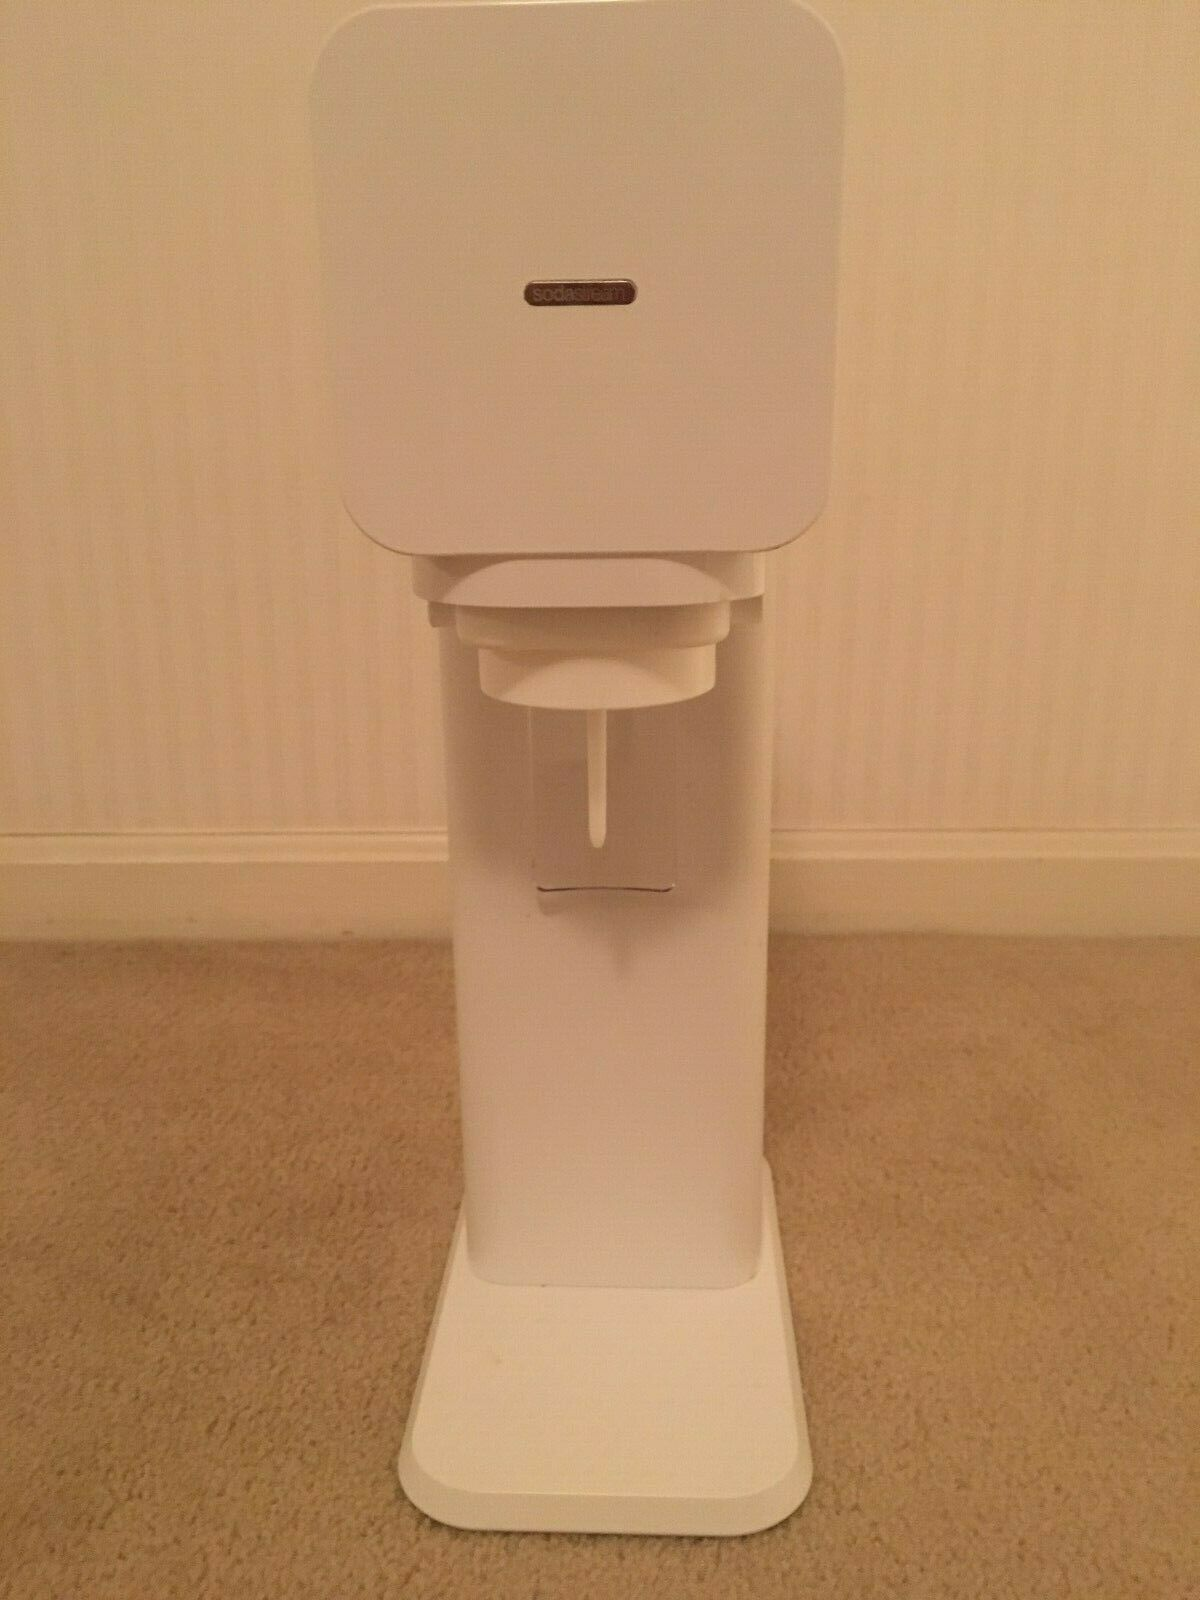 Soda Stream desirable modern white model  w  bonus